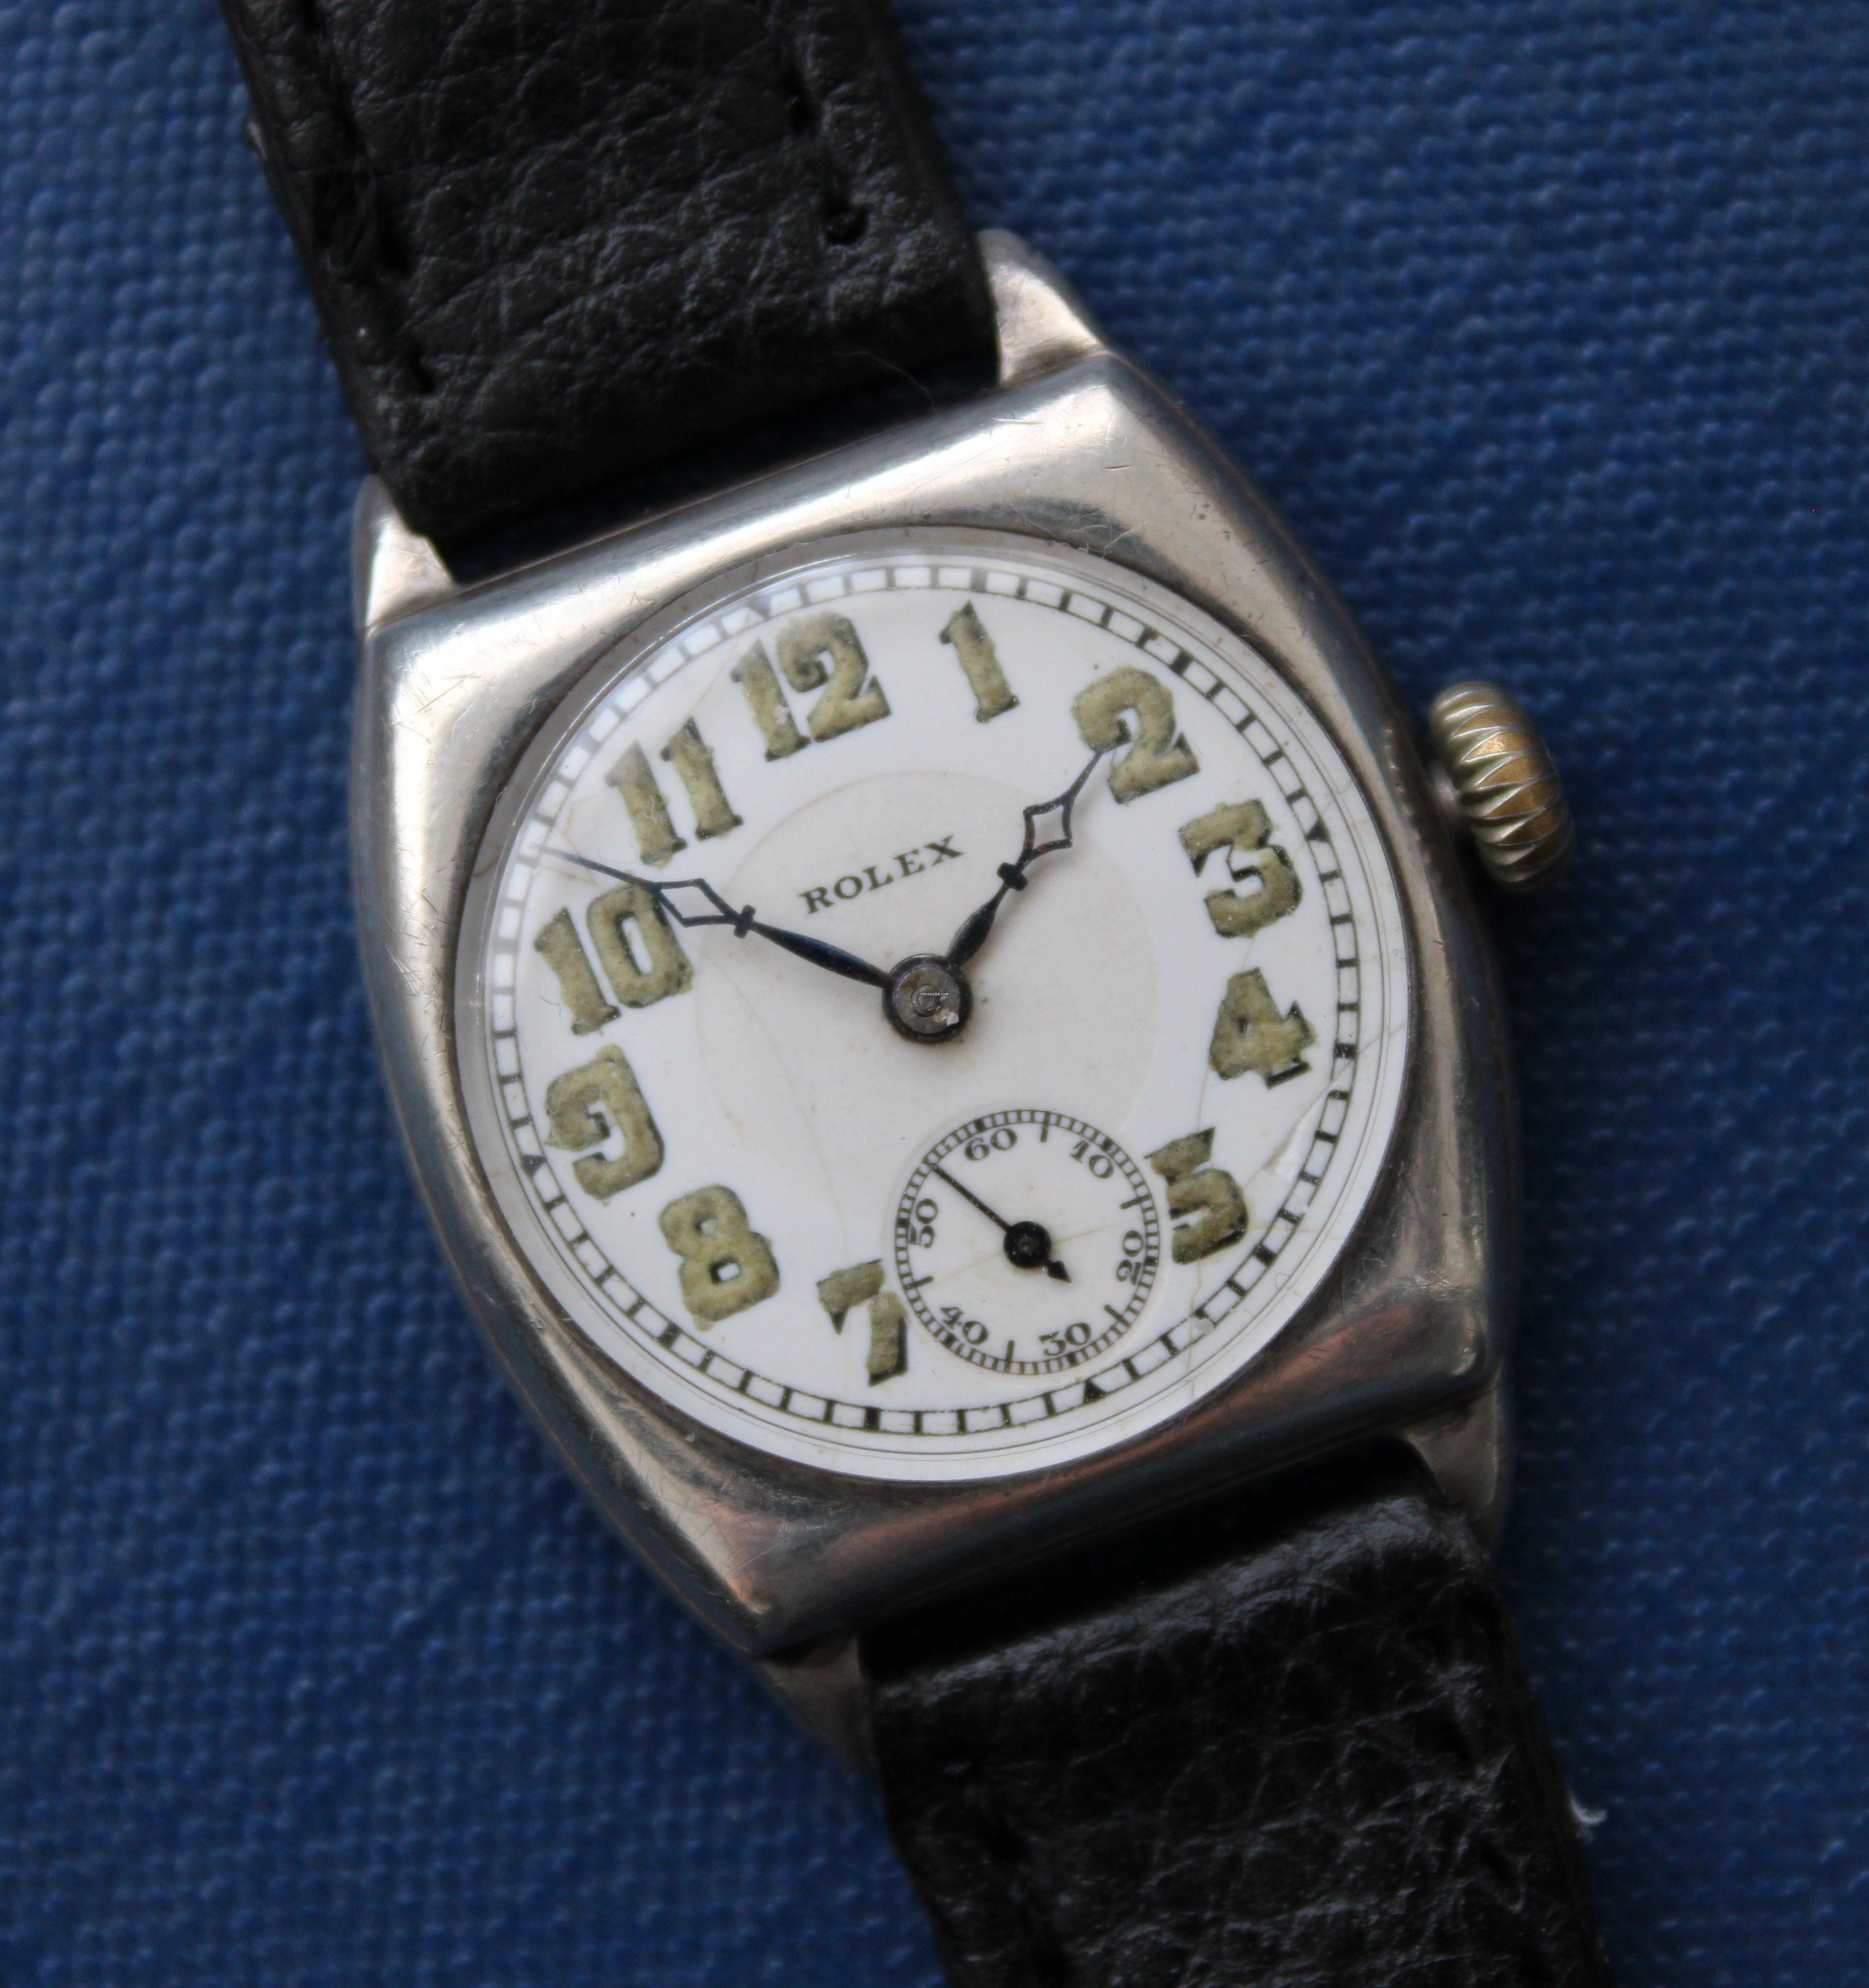 Rolex Viceroy Ref. 49 for $1,343 for sale from a Trusted